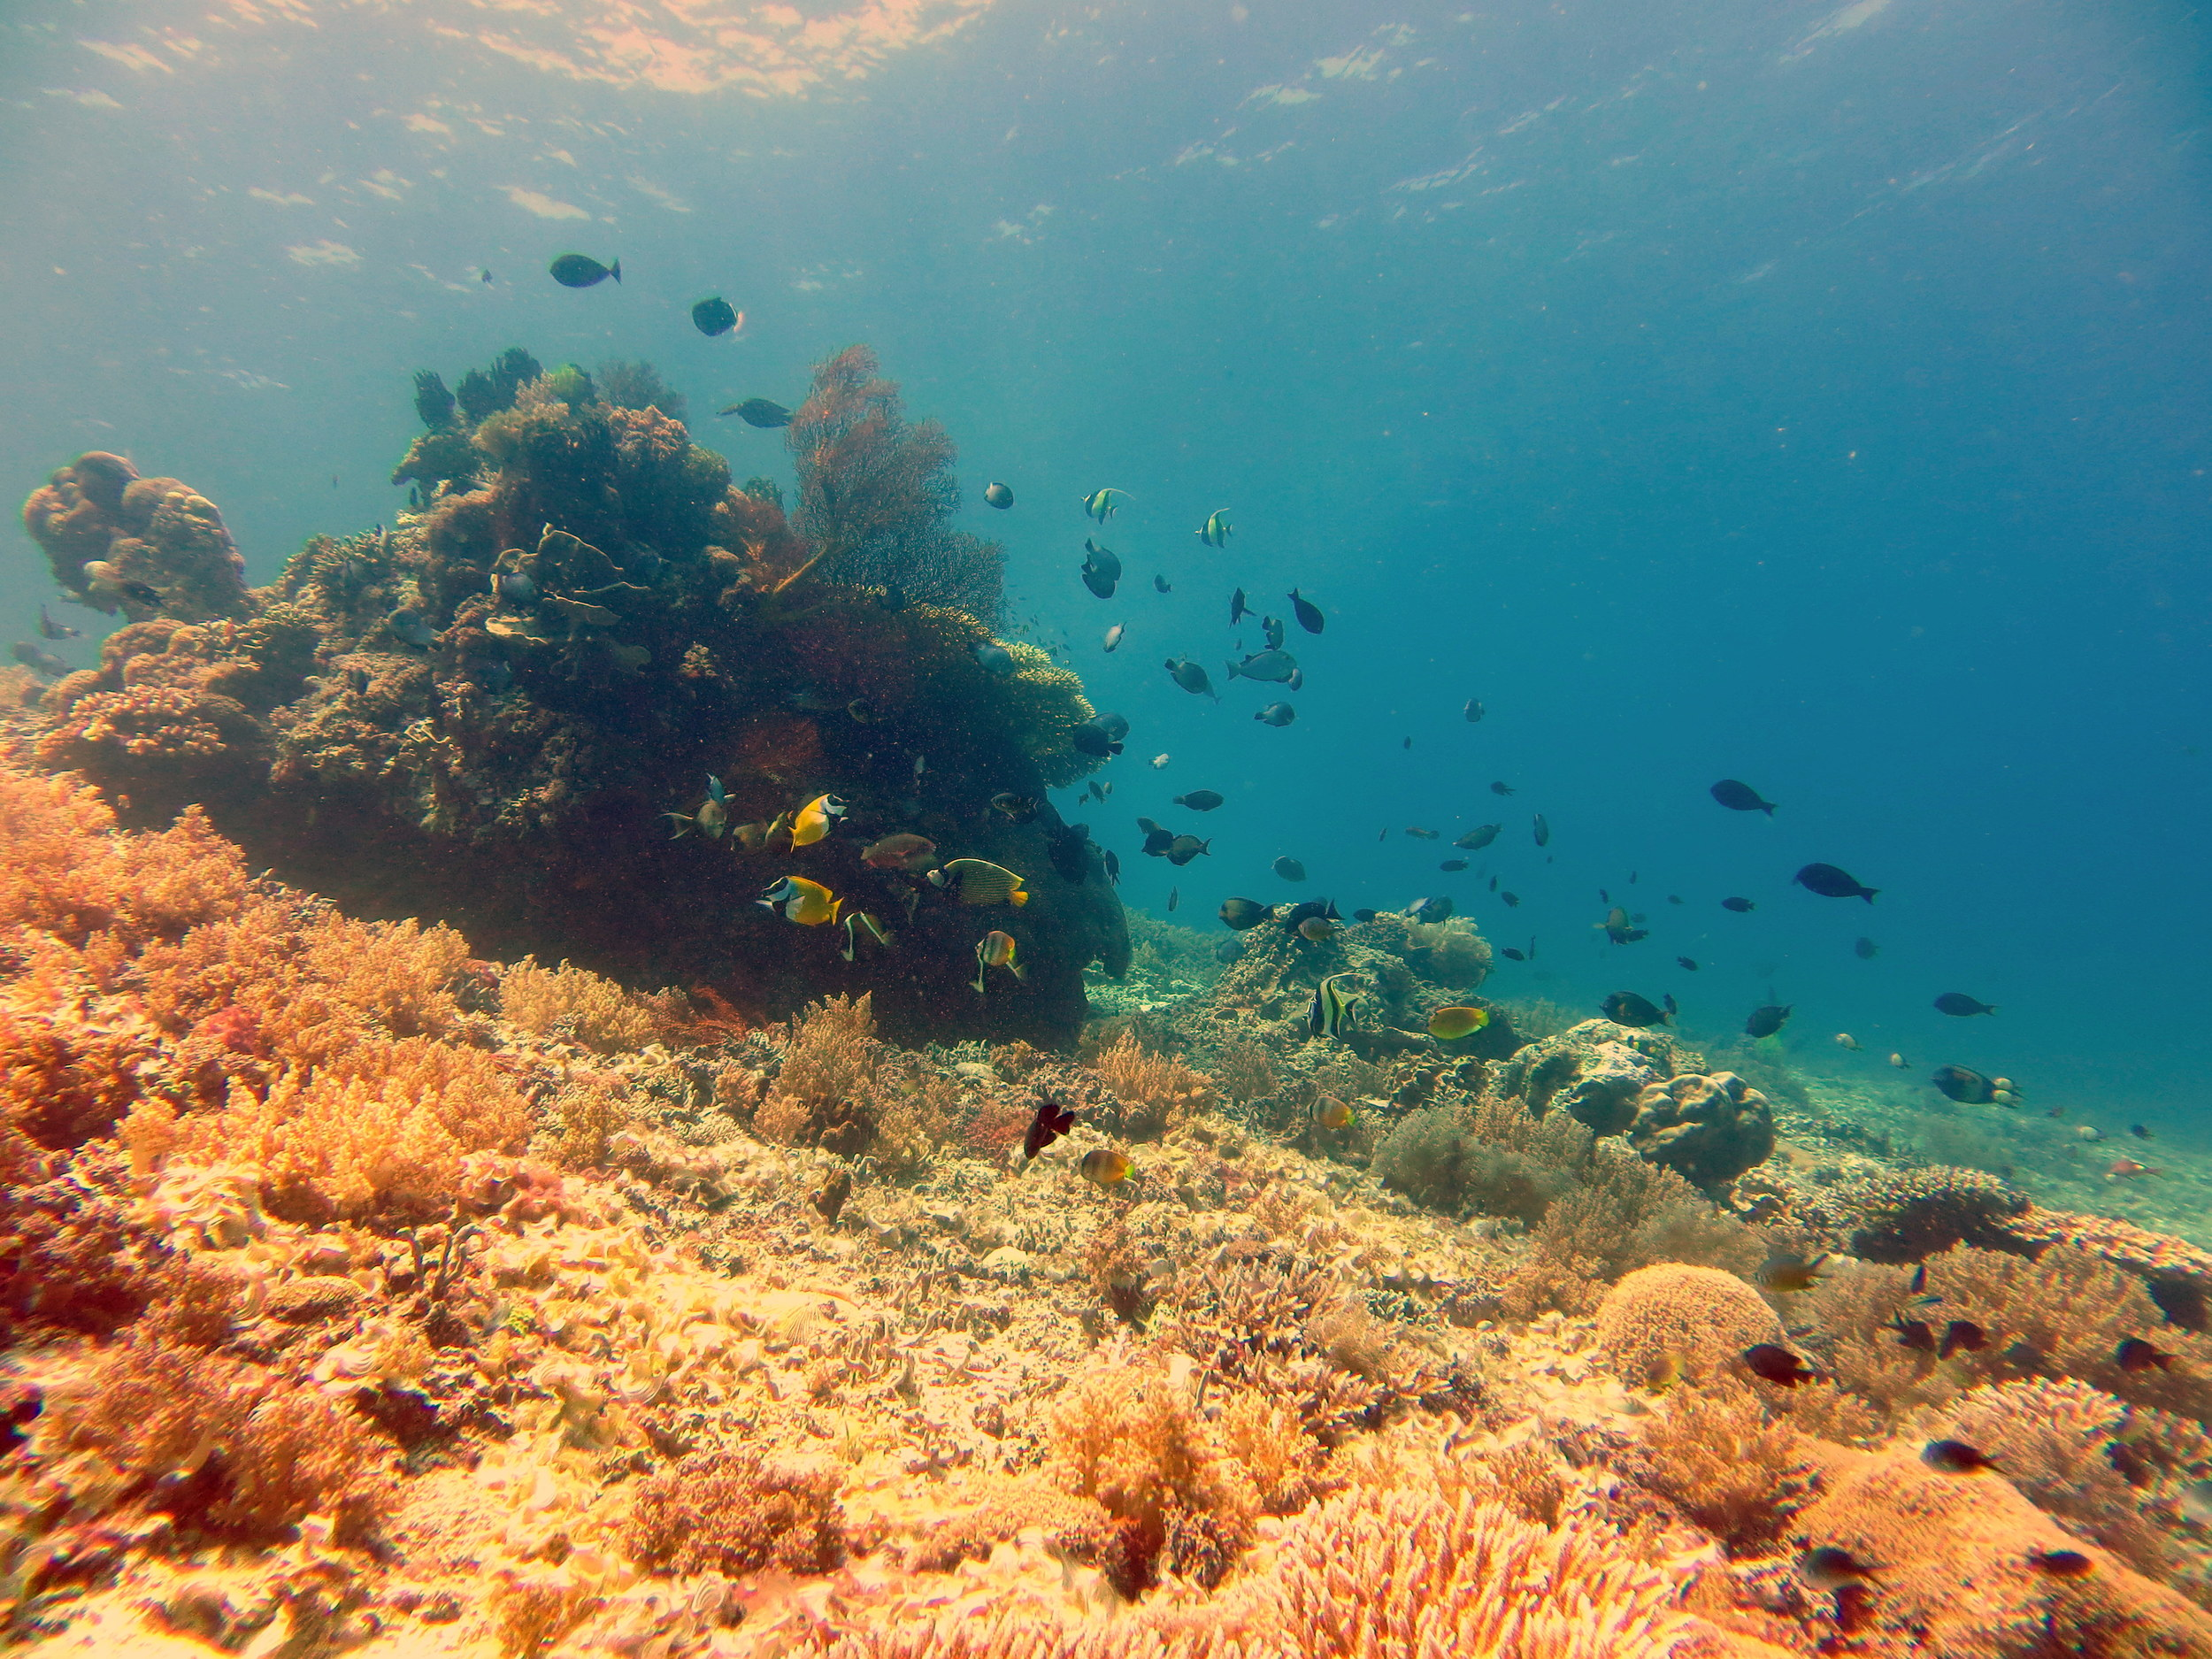 This beautiful dive site is 10 meters deep, the coral are beautiful and the marine life is great.